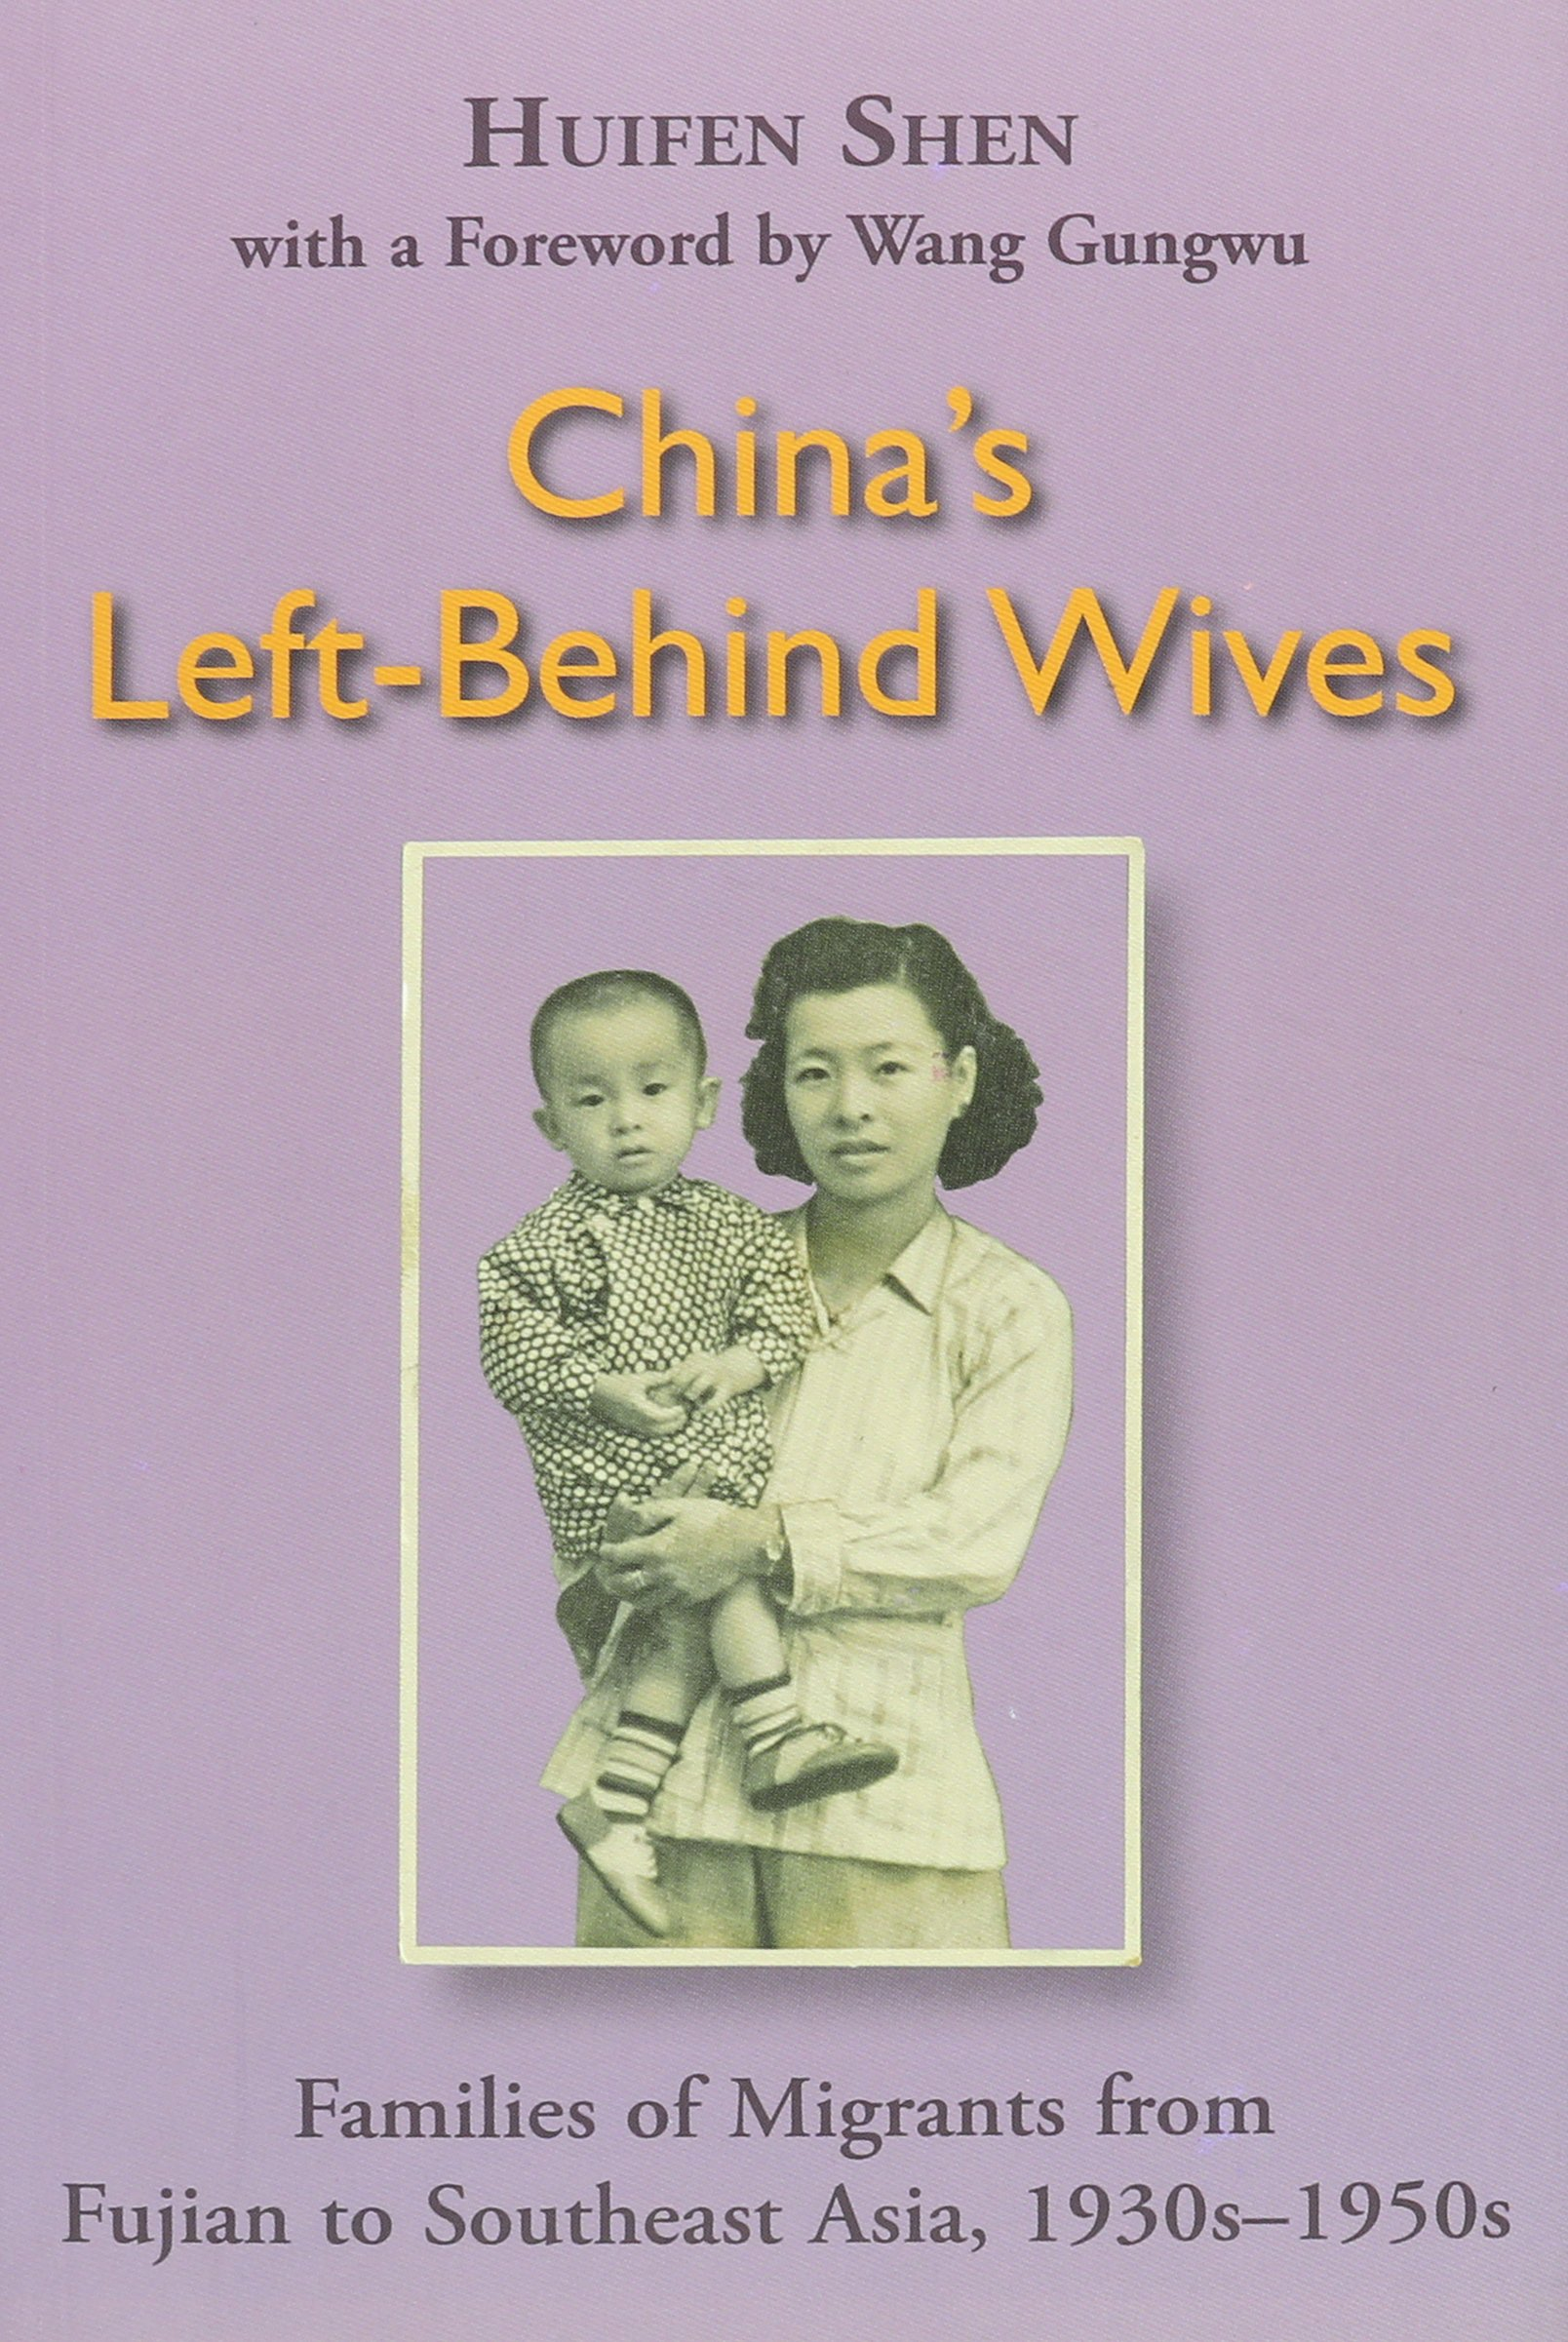 China's Left-Behind Wives: Families of Migrants from Fujian to Southeast Asia, 1930s-1950s ebook